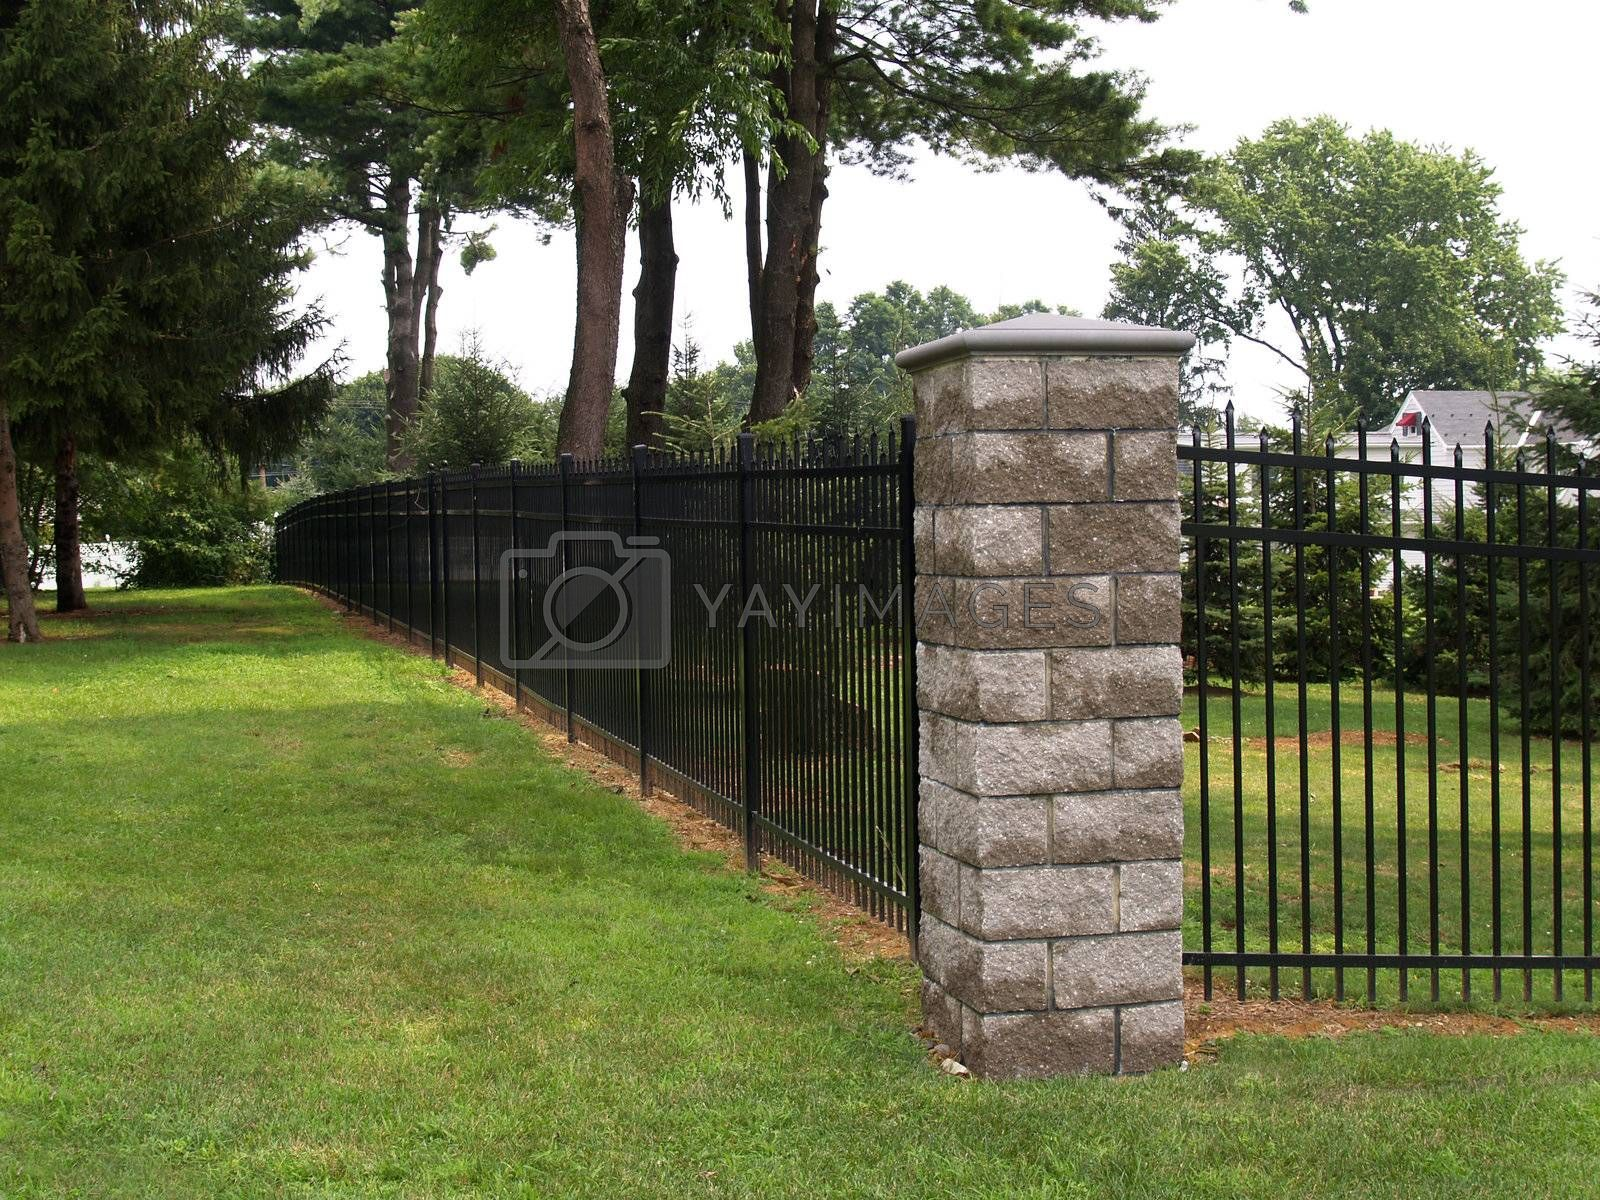 Royalty free image of tall black fence by cfarmer